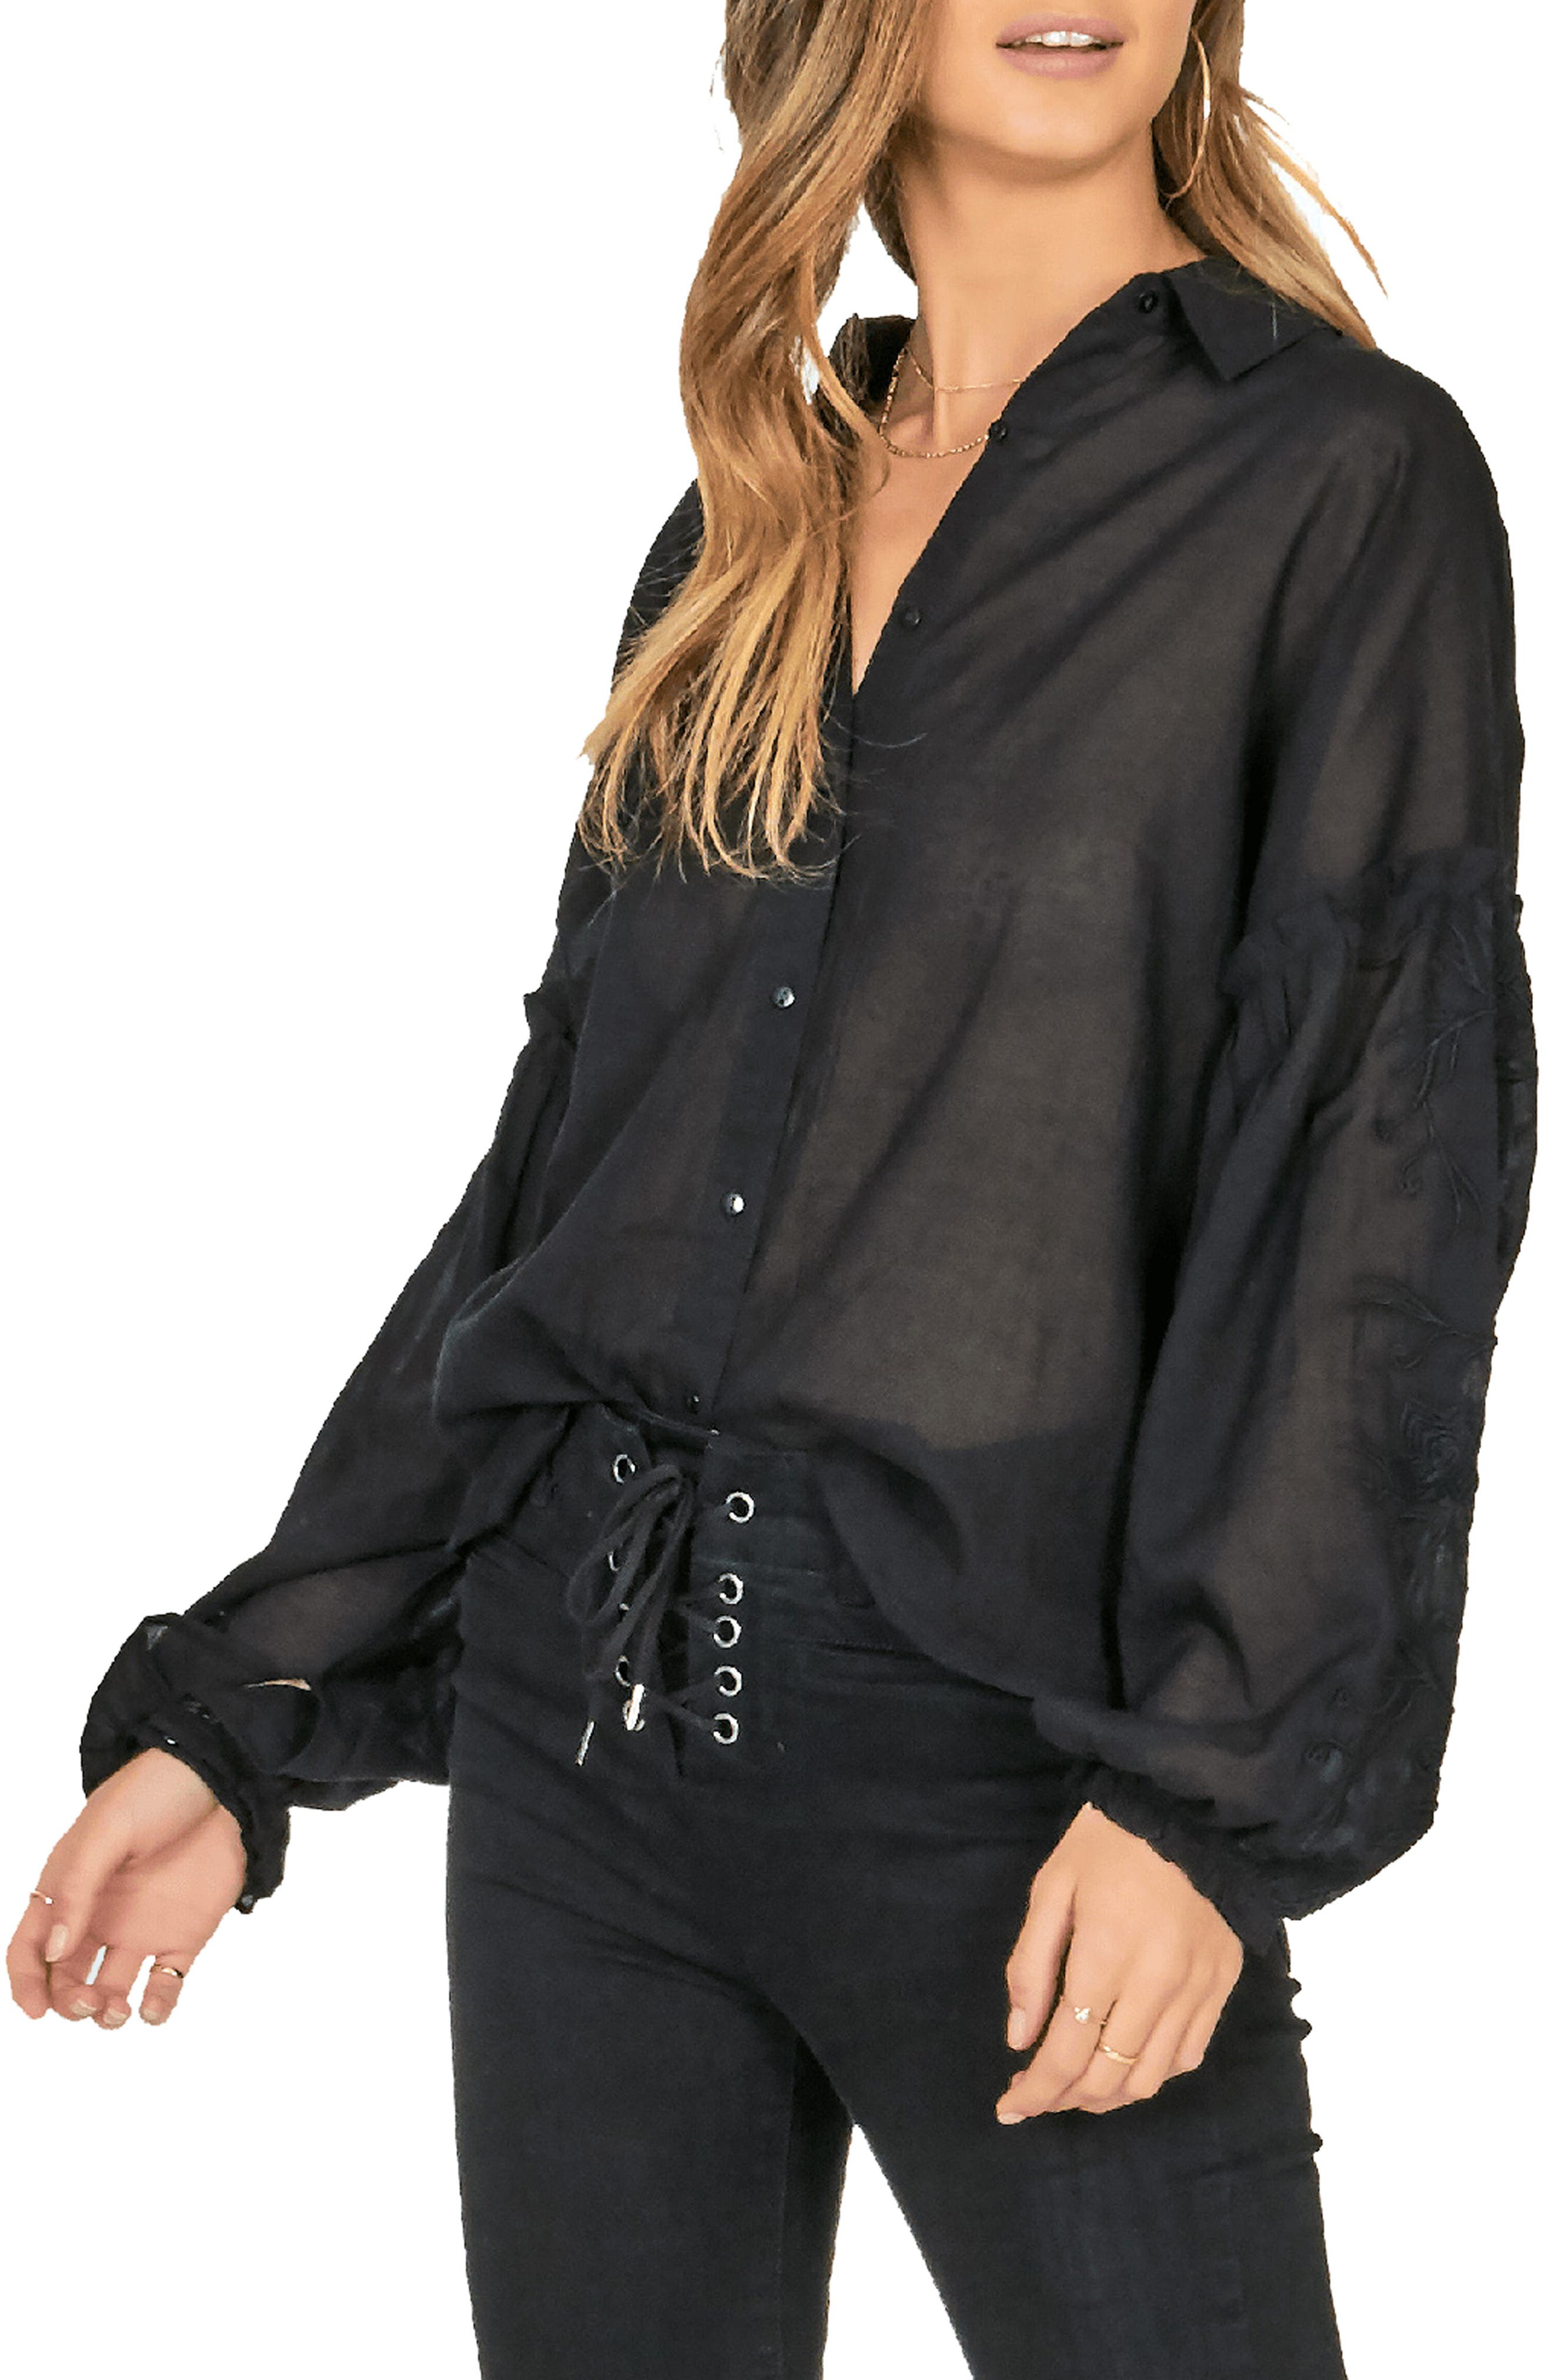 AMUSE SOCIETY Everyday Love Embroidered Blouse in Charcoal